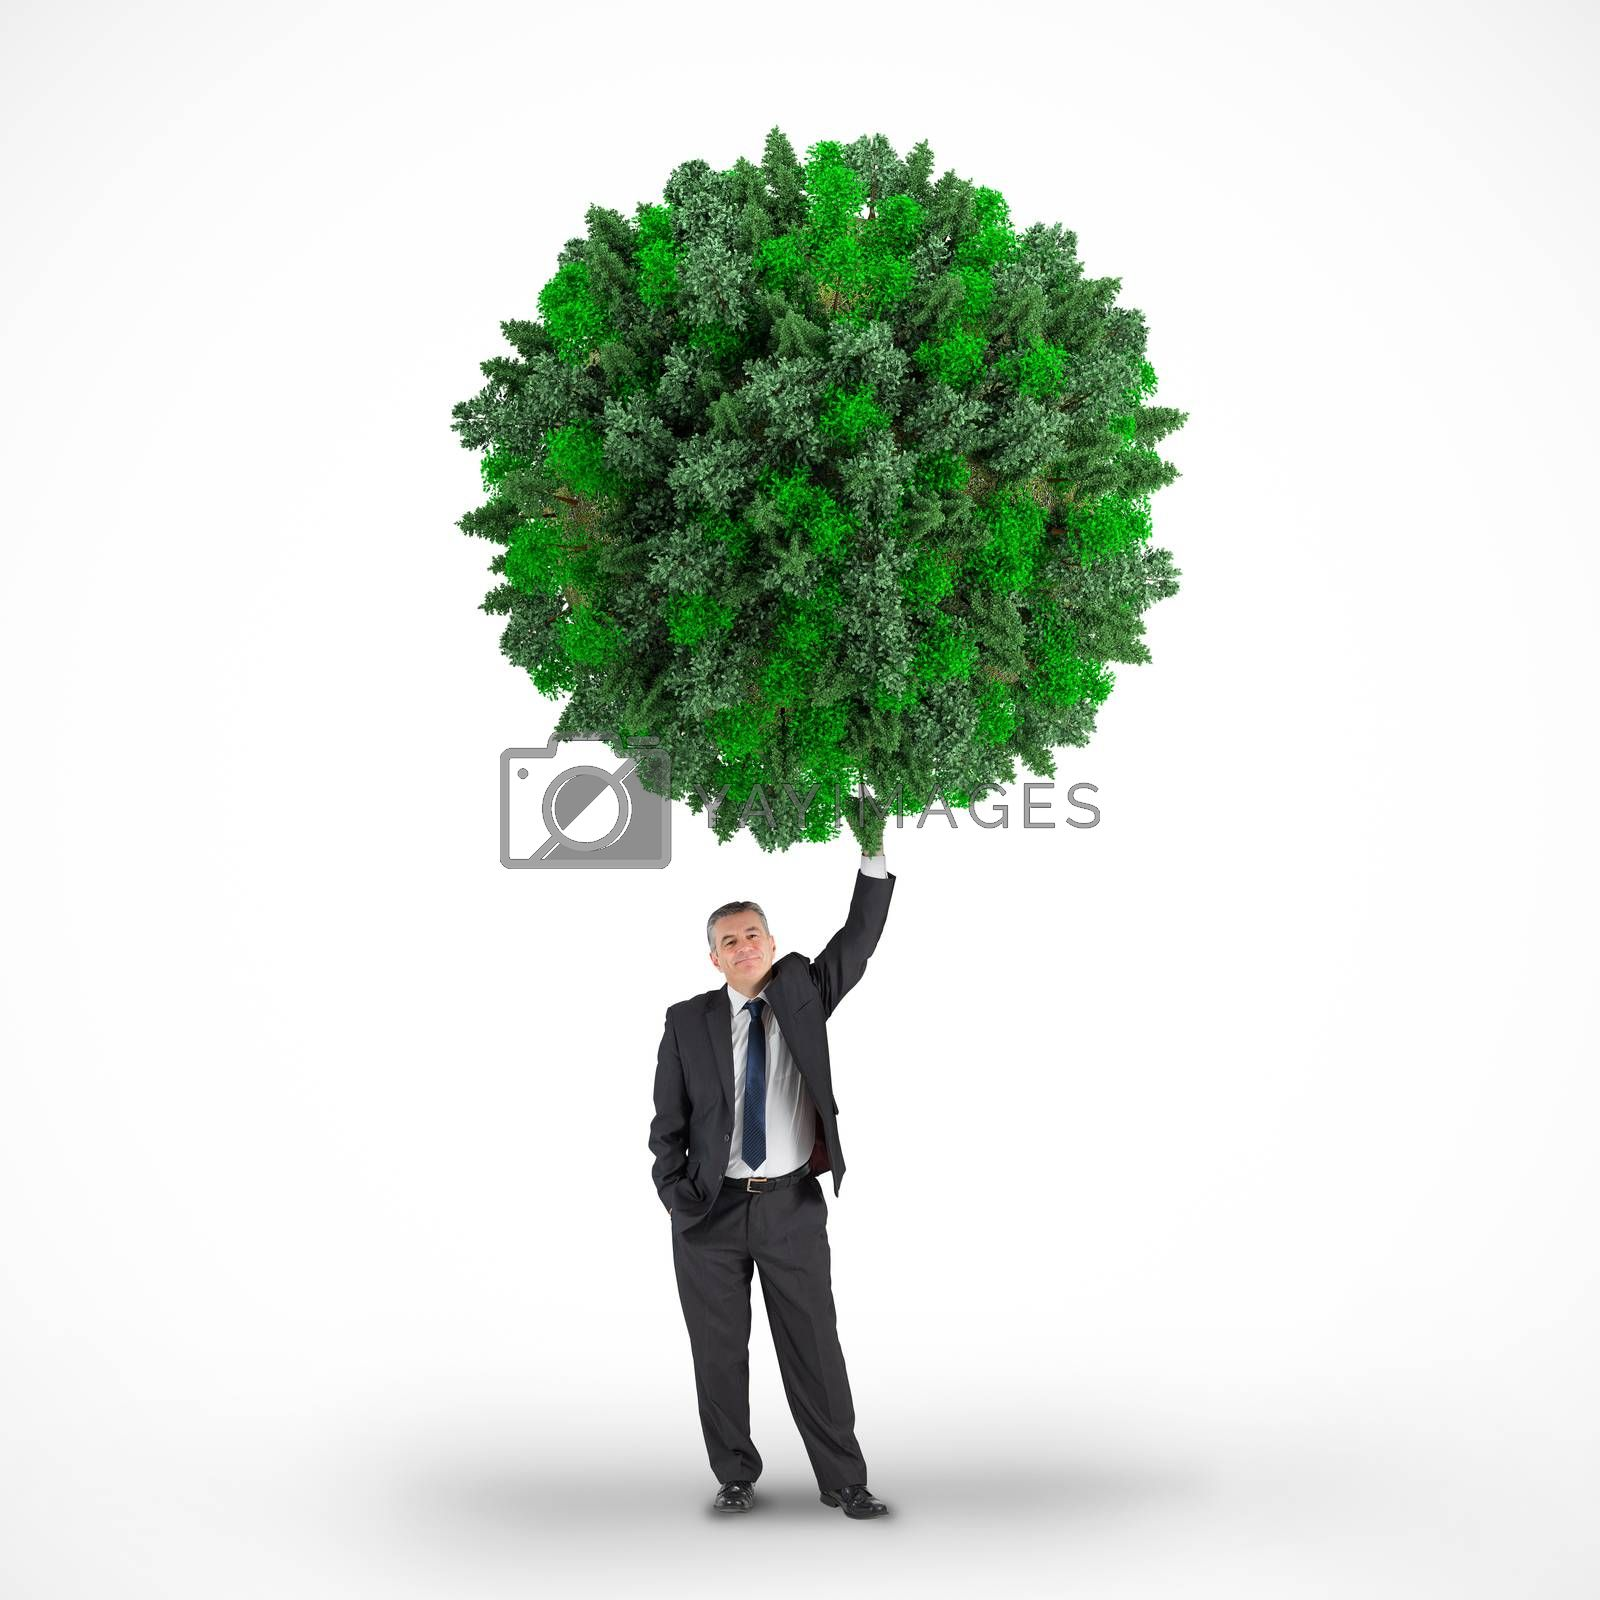 Composite image of businessman holding green sphere against white background with vignette